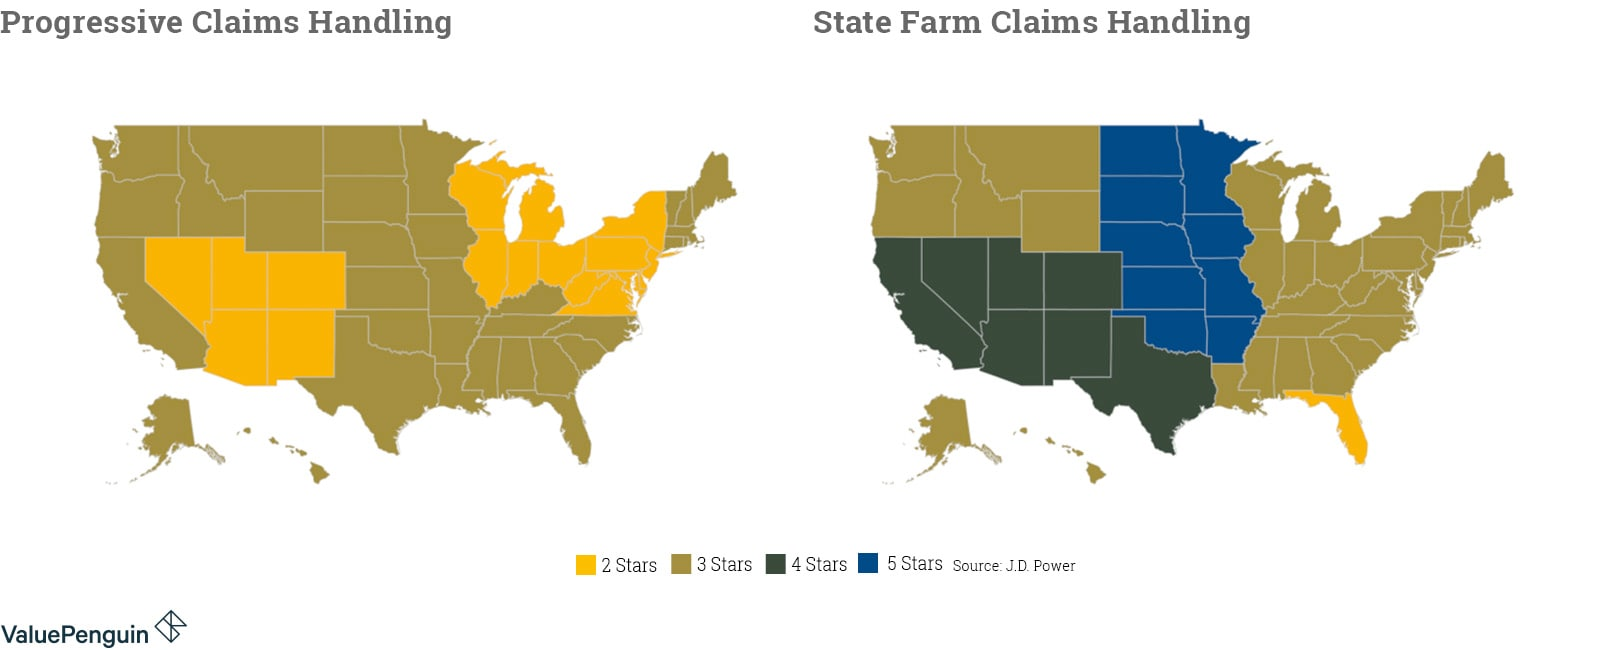 Maps comparing claims satisfaction for Progressive and State Farm